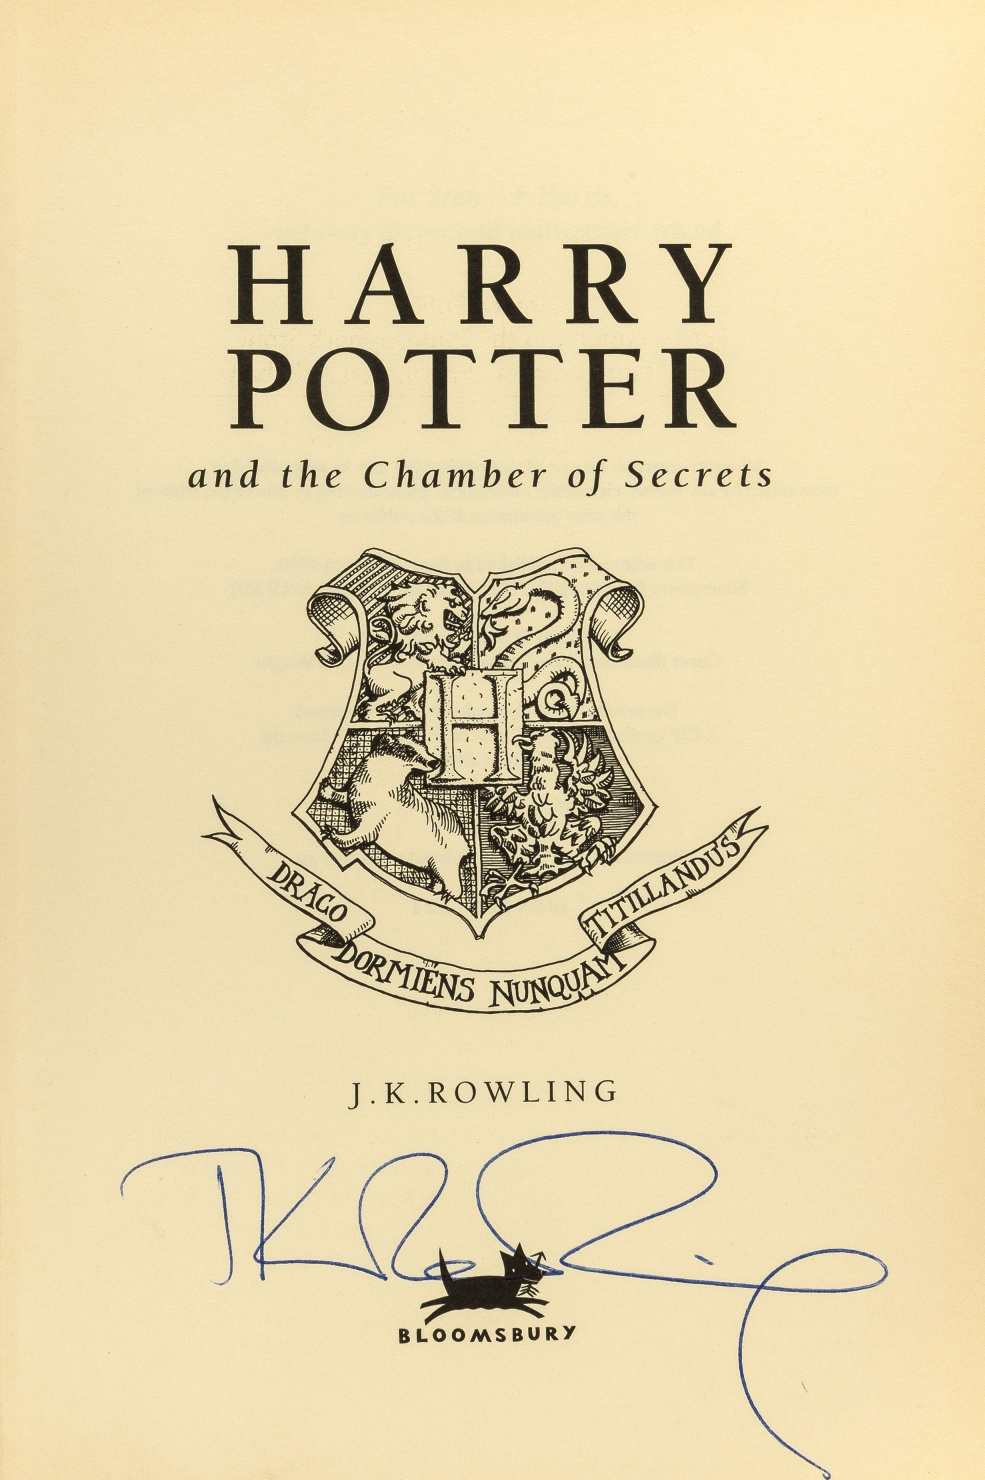 J.K. Rowling signature forgery sold at The SaleRoom auction house for 200GBP.